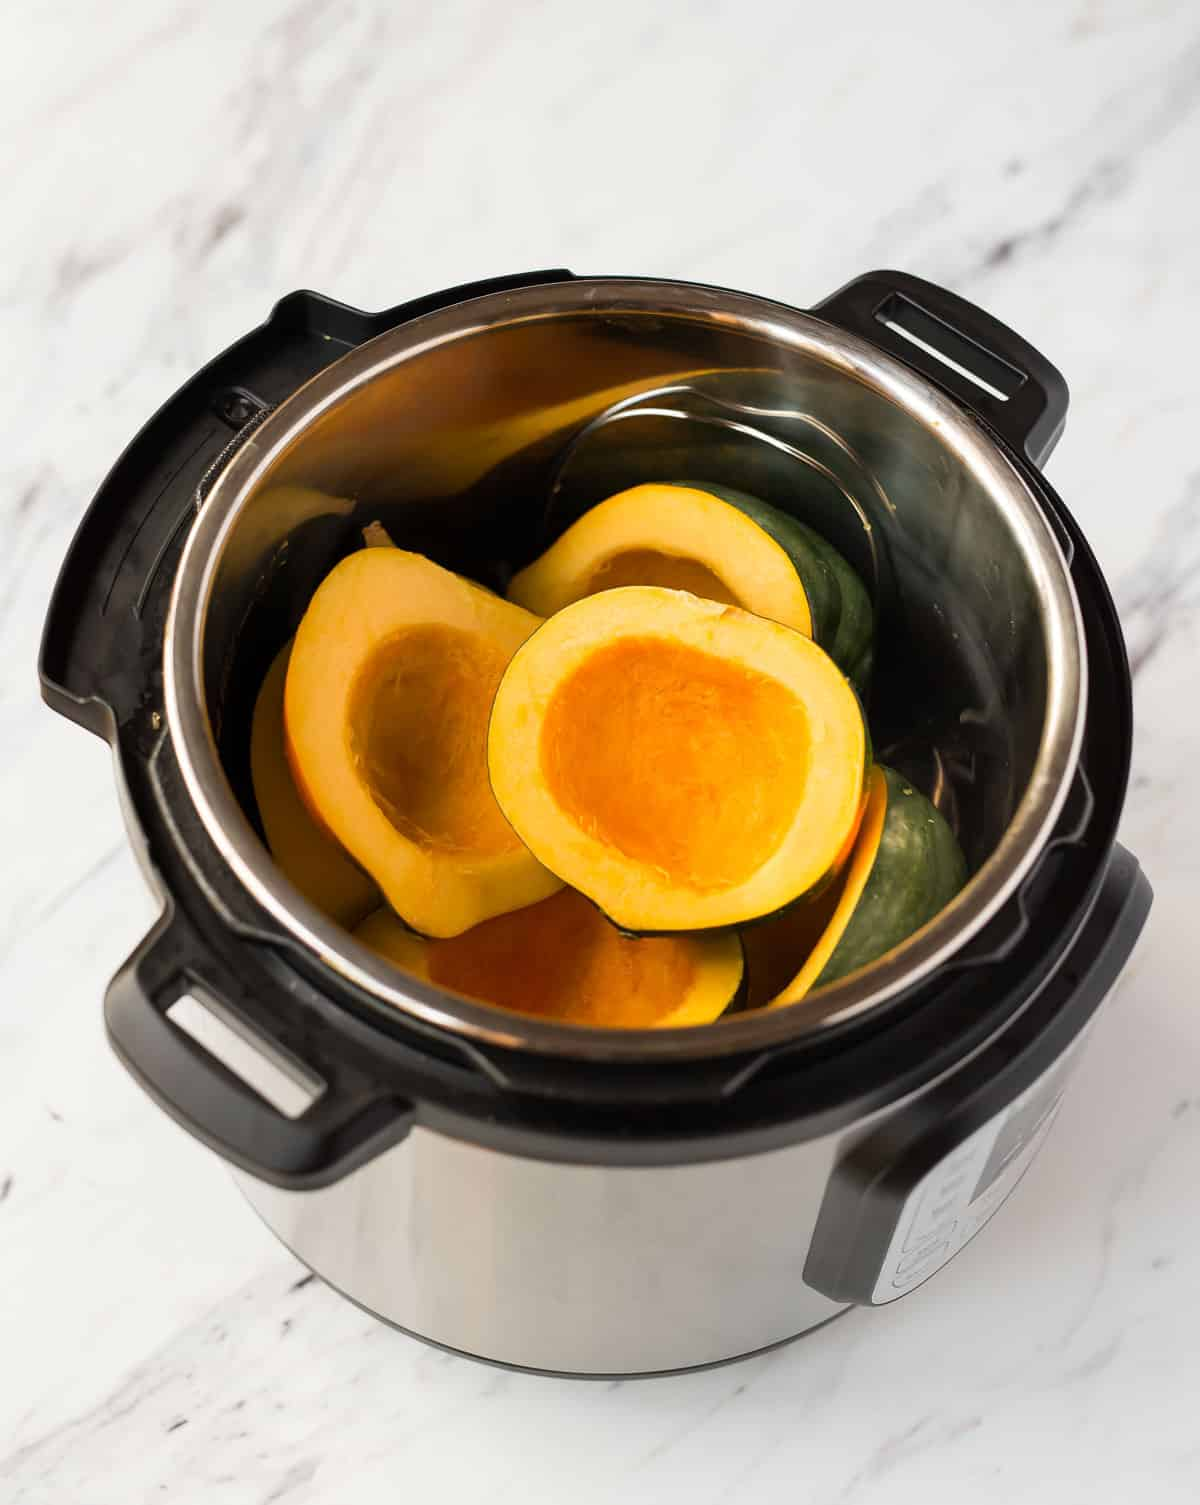 Cooking acorn squash in an Instant Pot